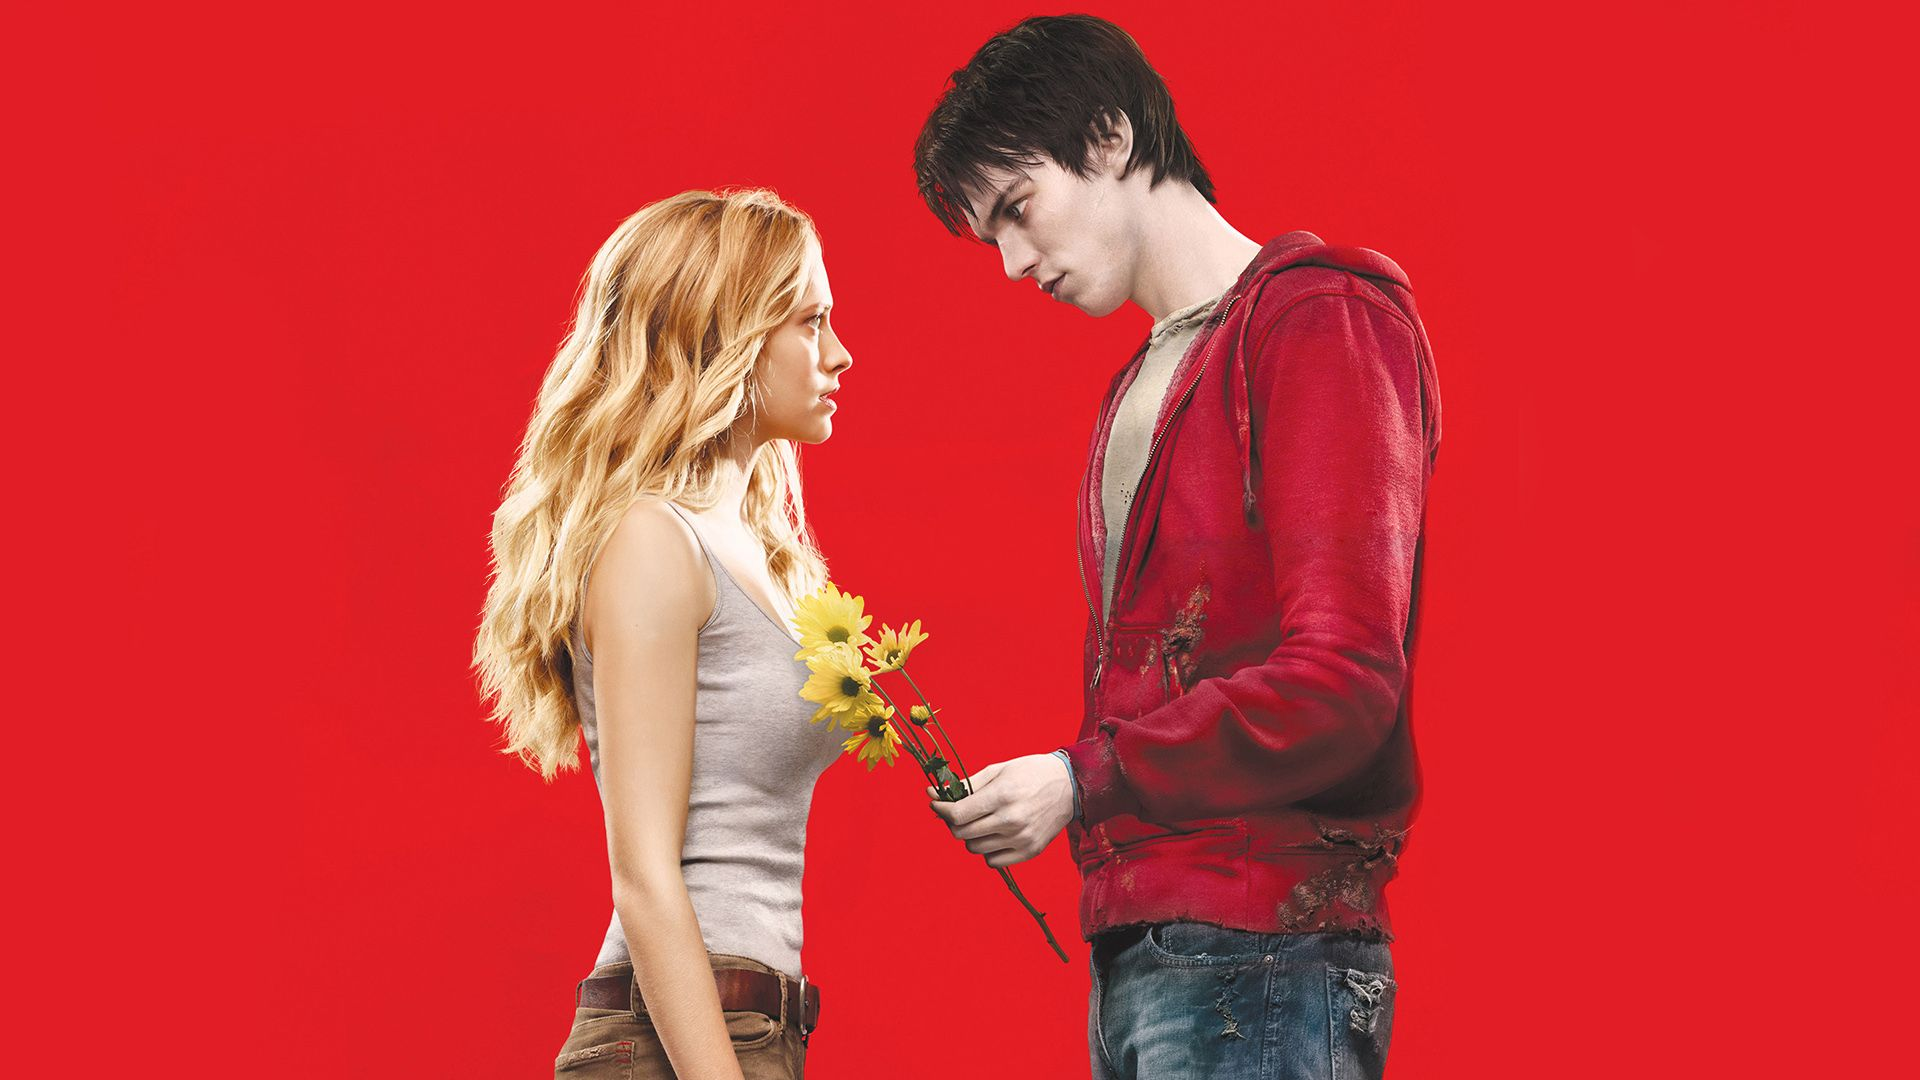 Pin By Joshua Marshall On Movie Wallpaper Warm Bodies Warm Bodies Full Movie Romance Film